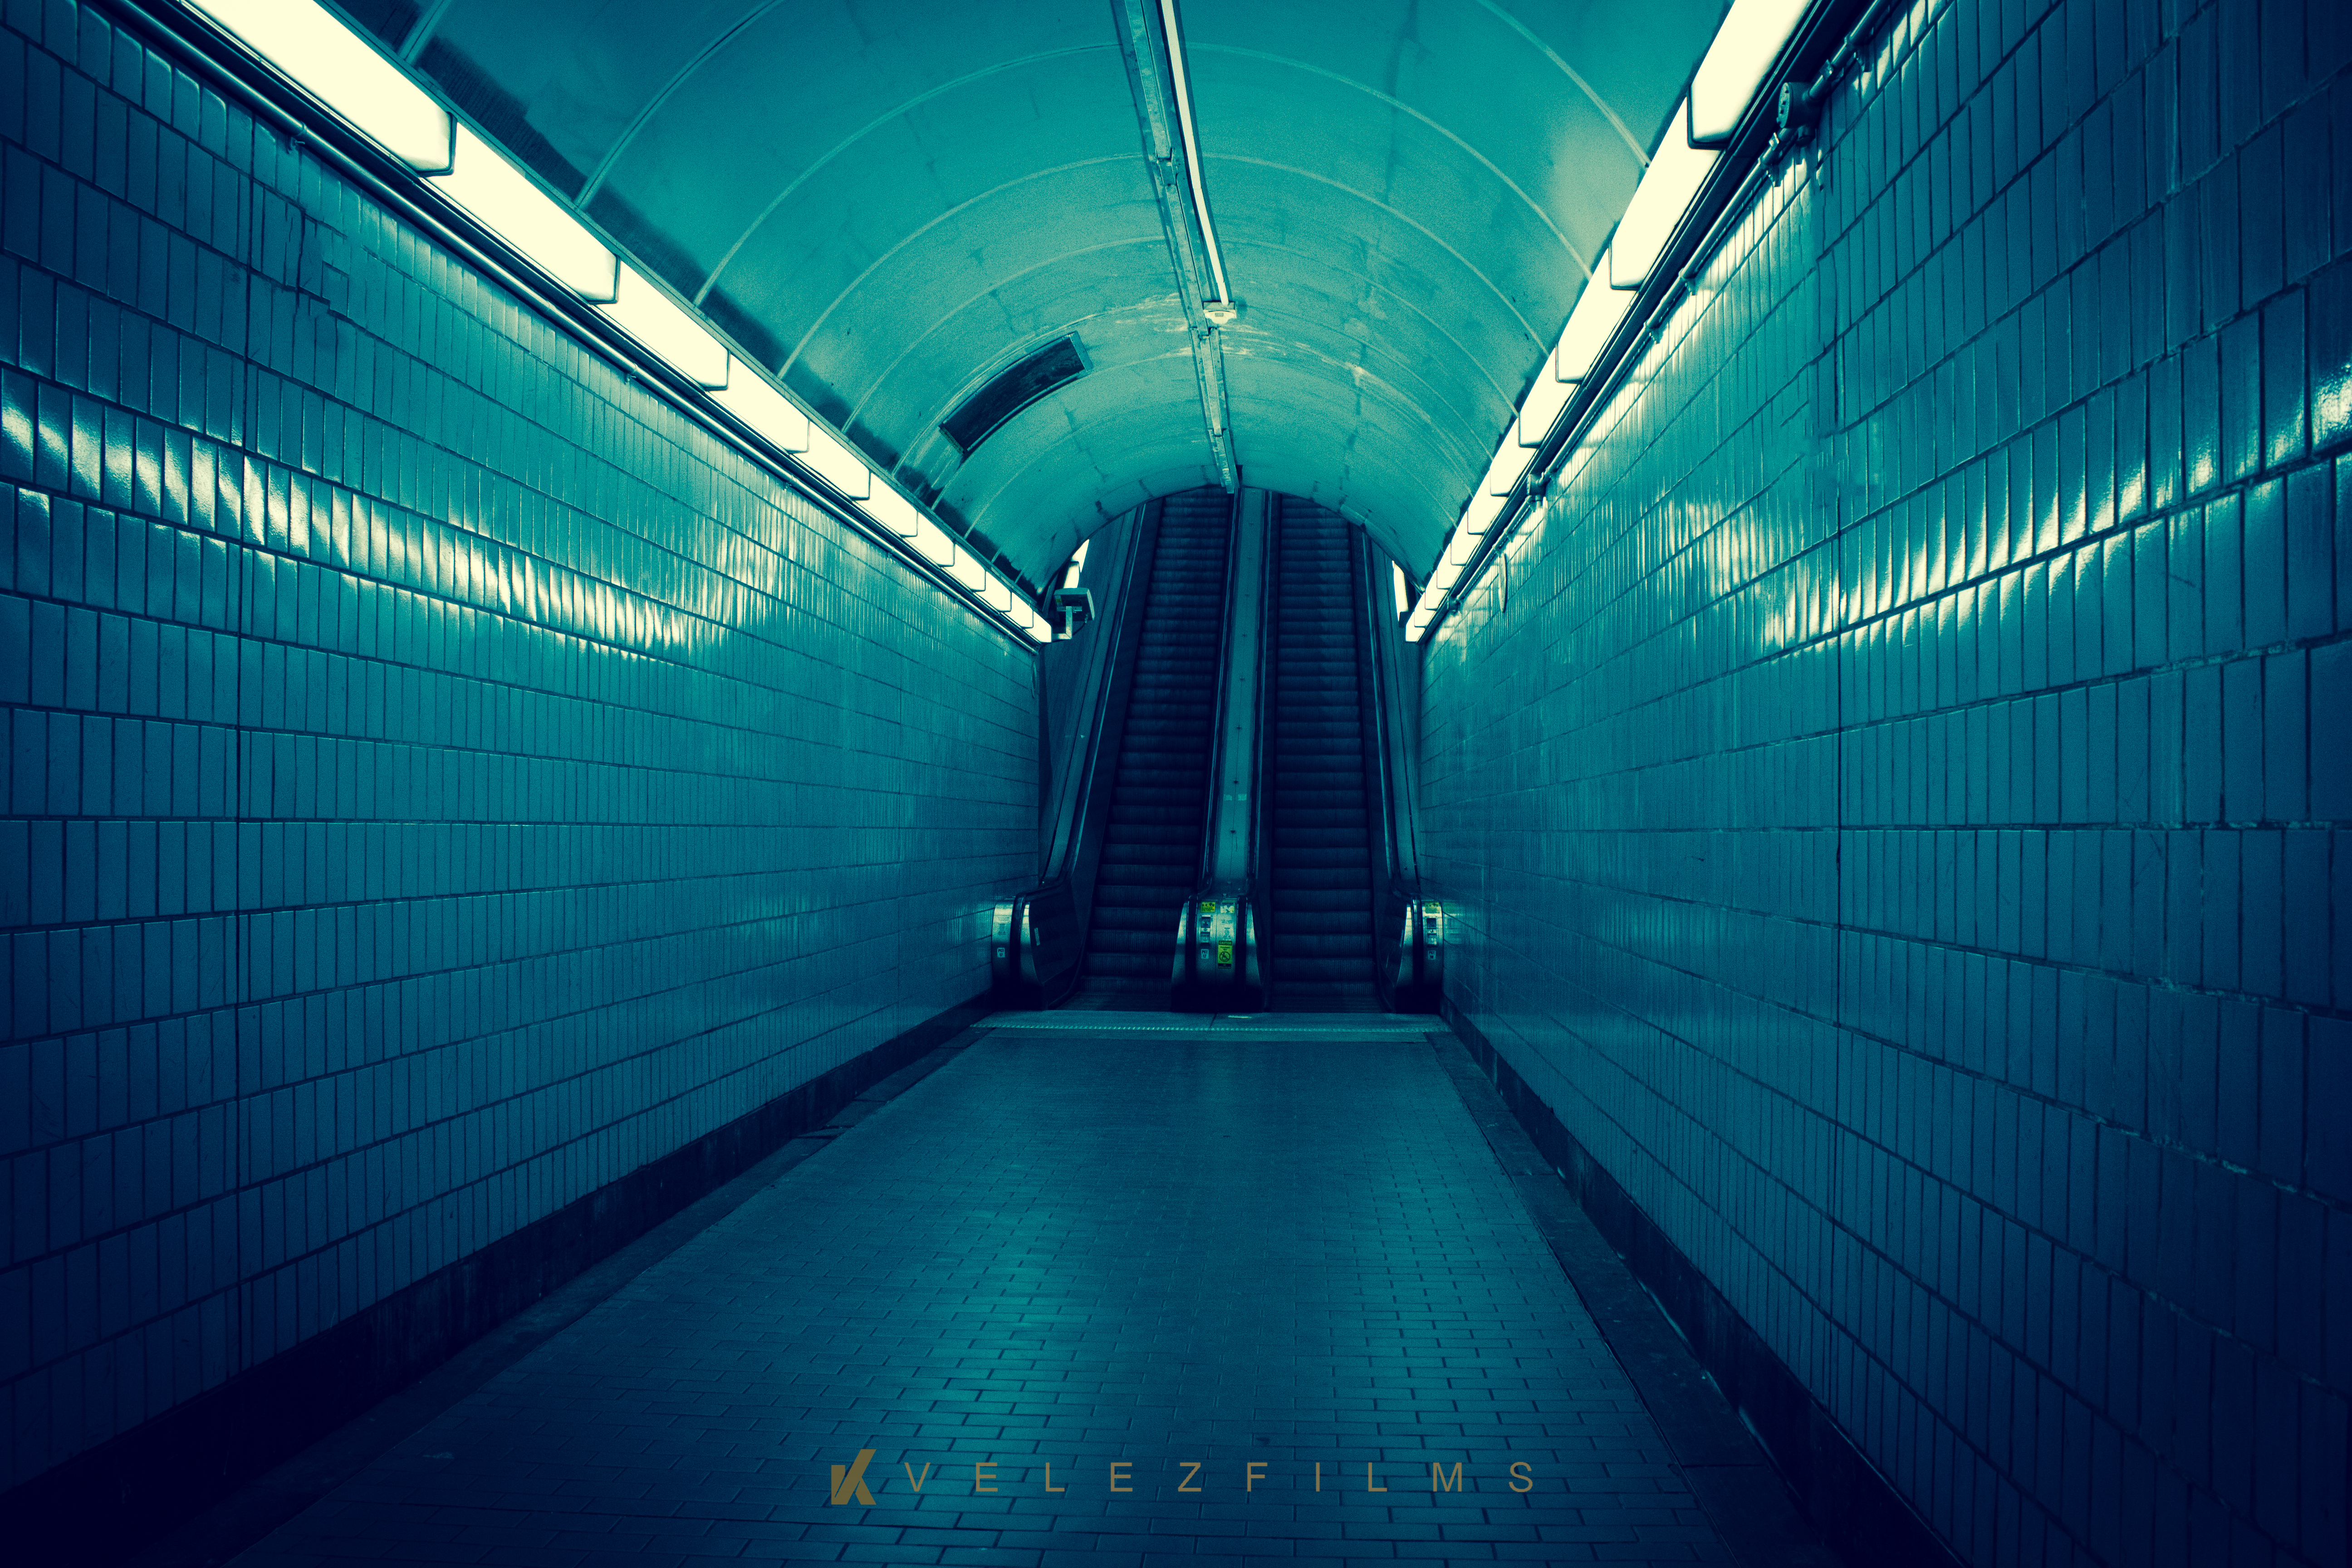 Tunnel (1 of 1)